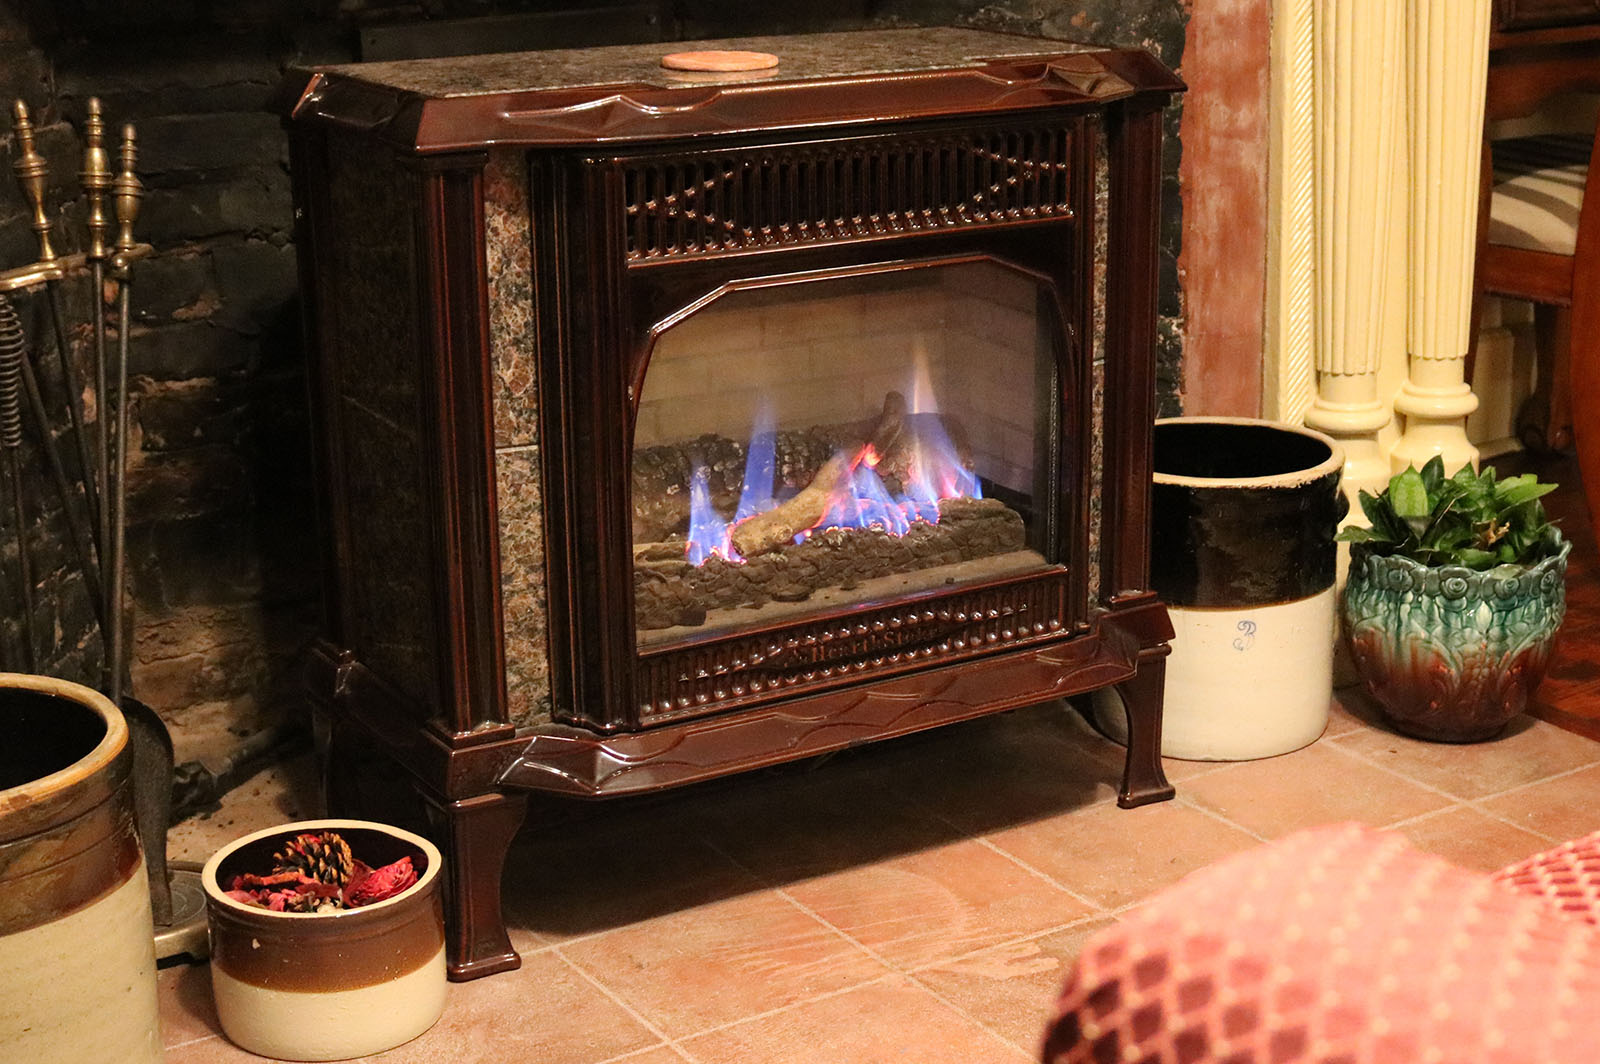 Cozy Fire, James Manning B&B, Honesdale, PA